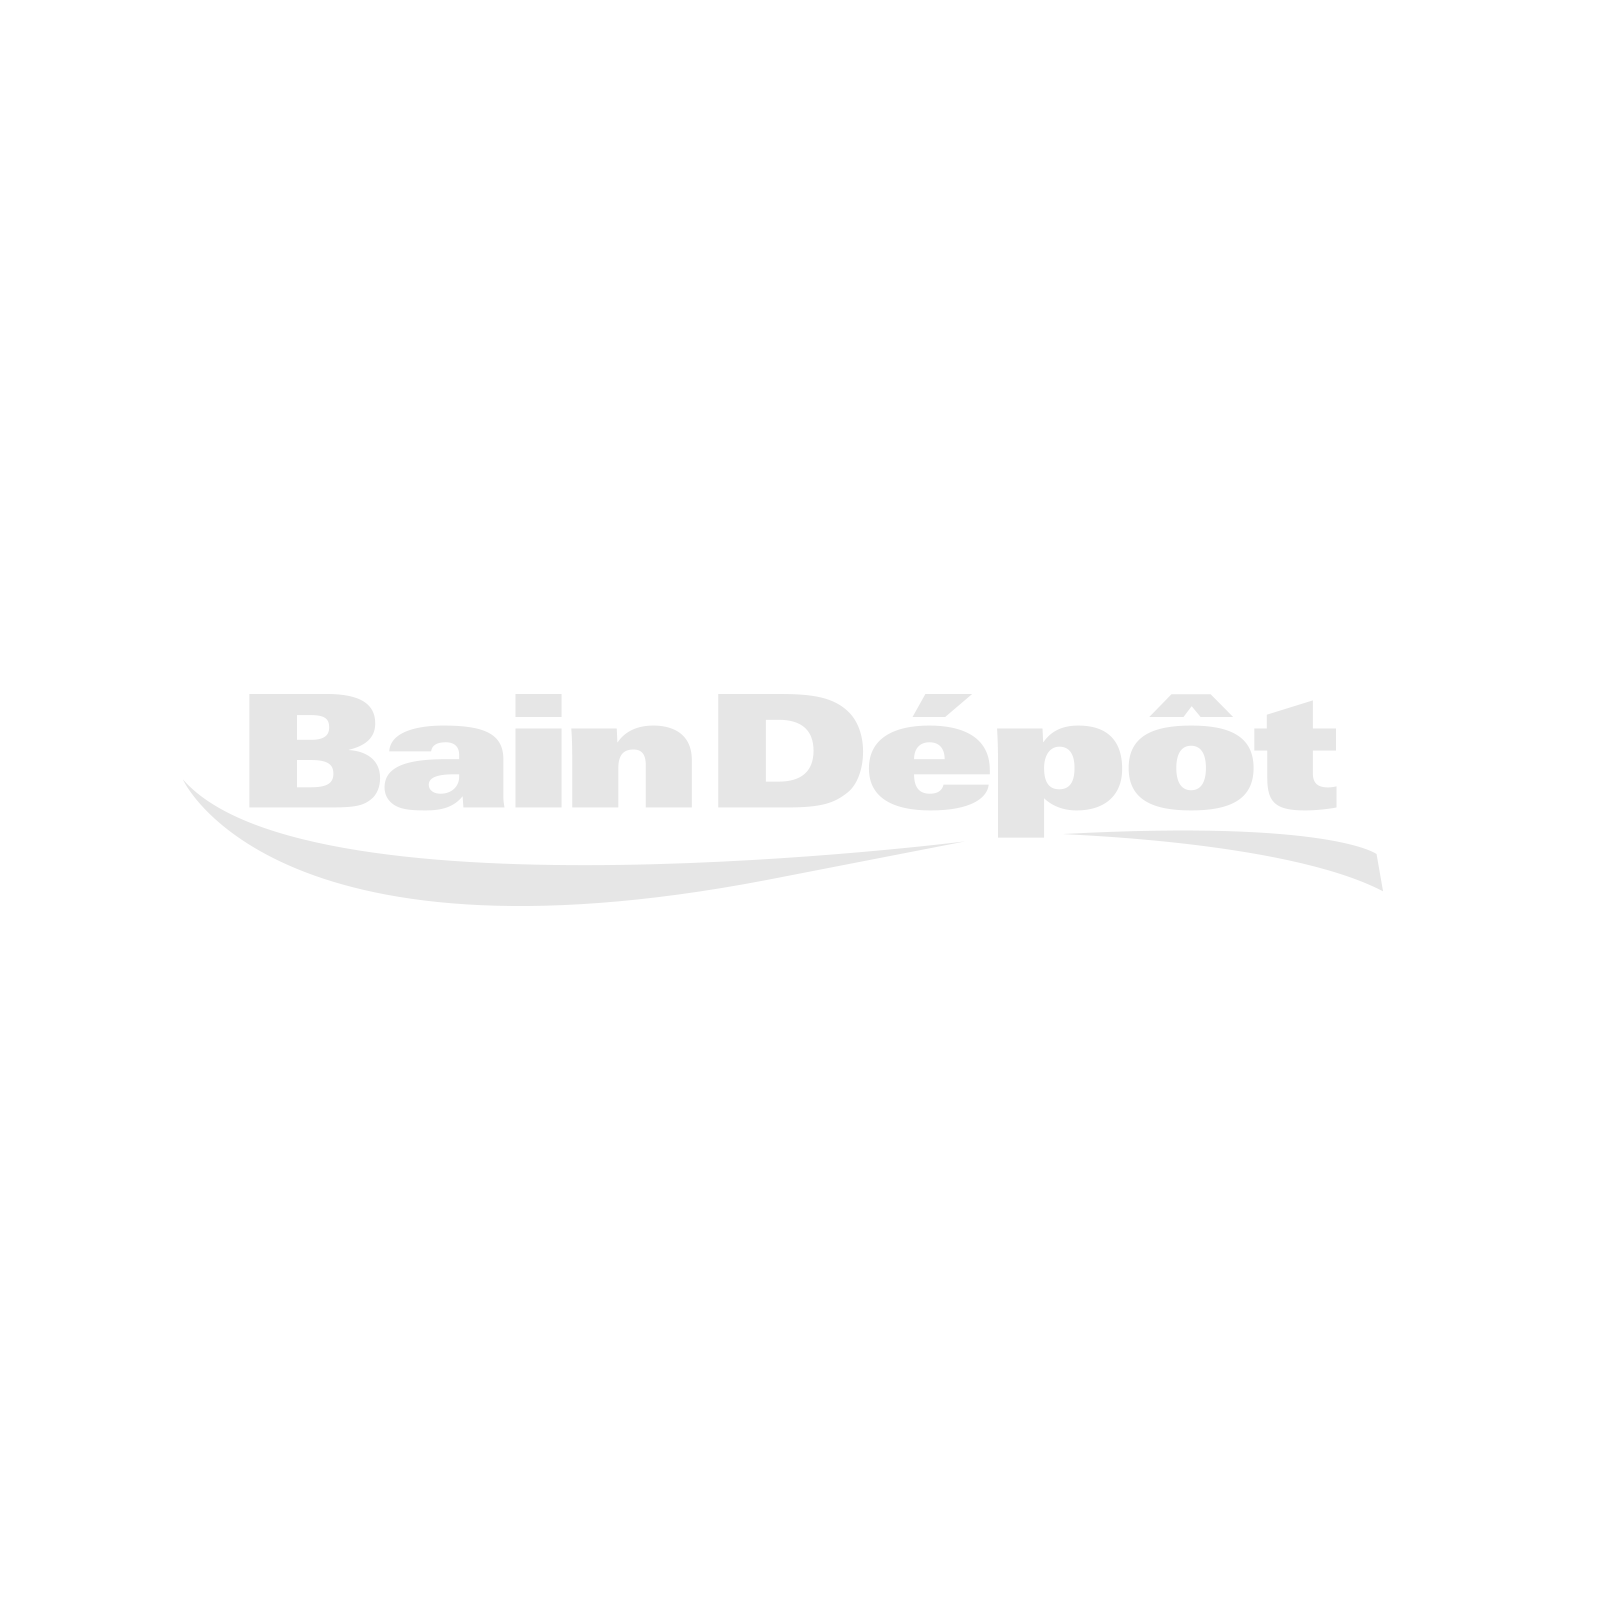 "36"" x 36"" Belly shower door"